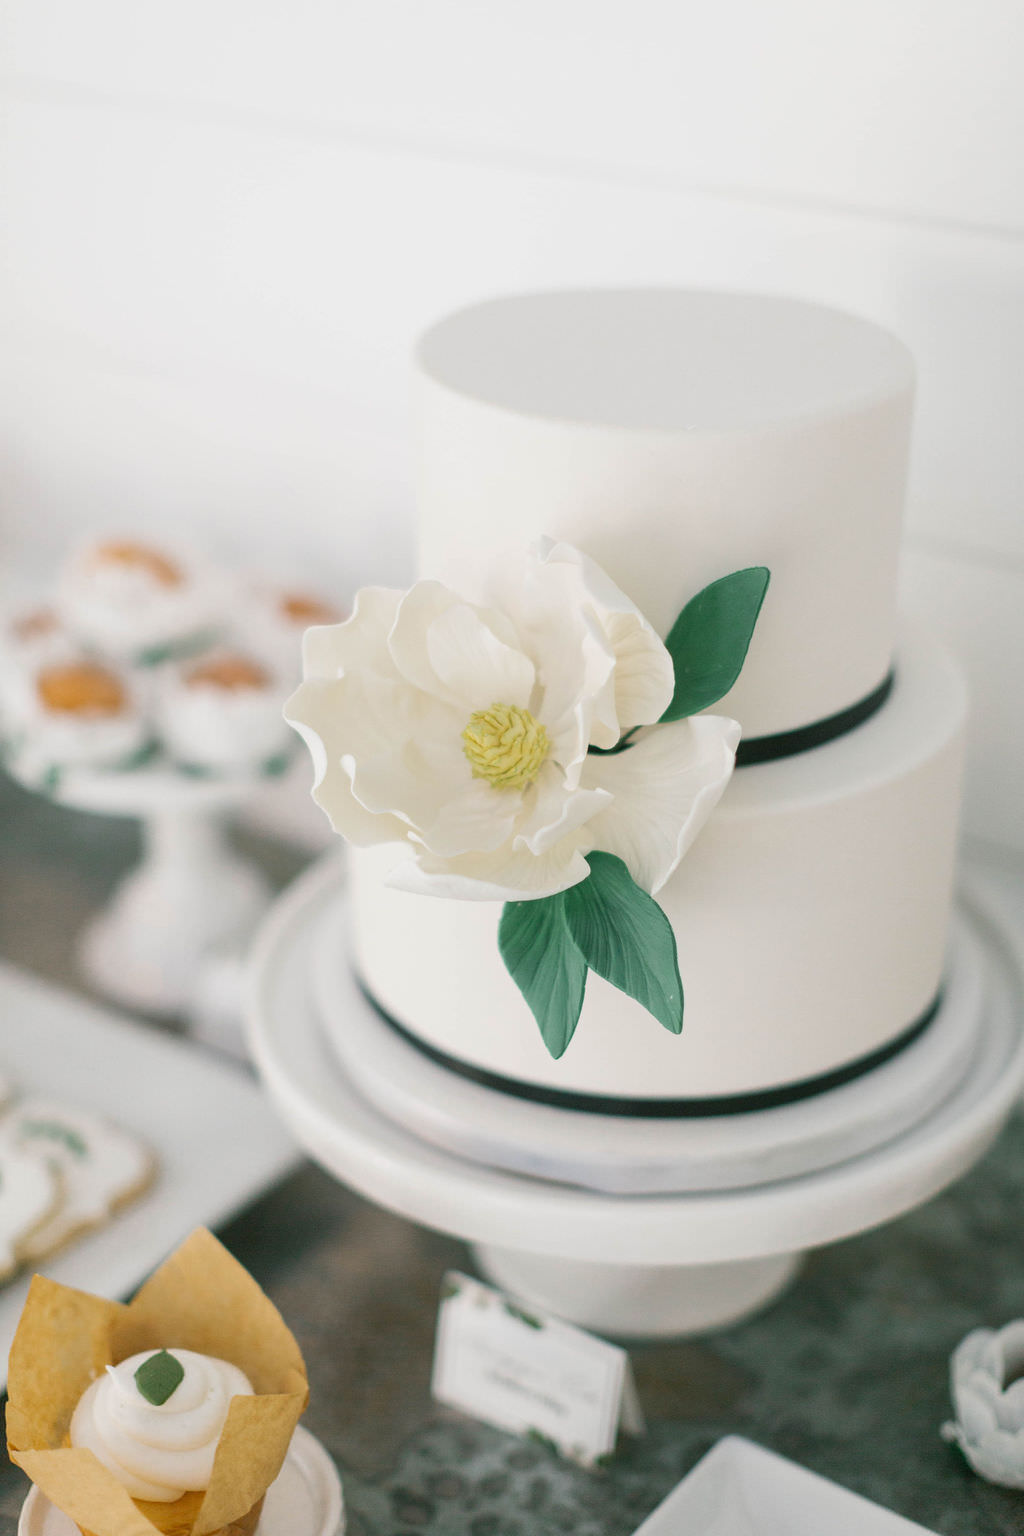 Bridal Brunch Dessert Sweets Bar with Small Two Tiered White Cake with Sugar Flower Magnolia Decor